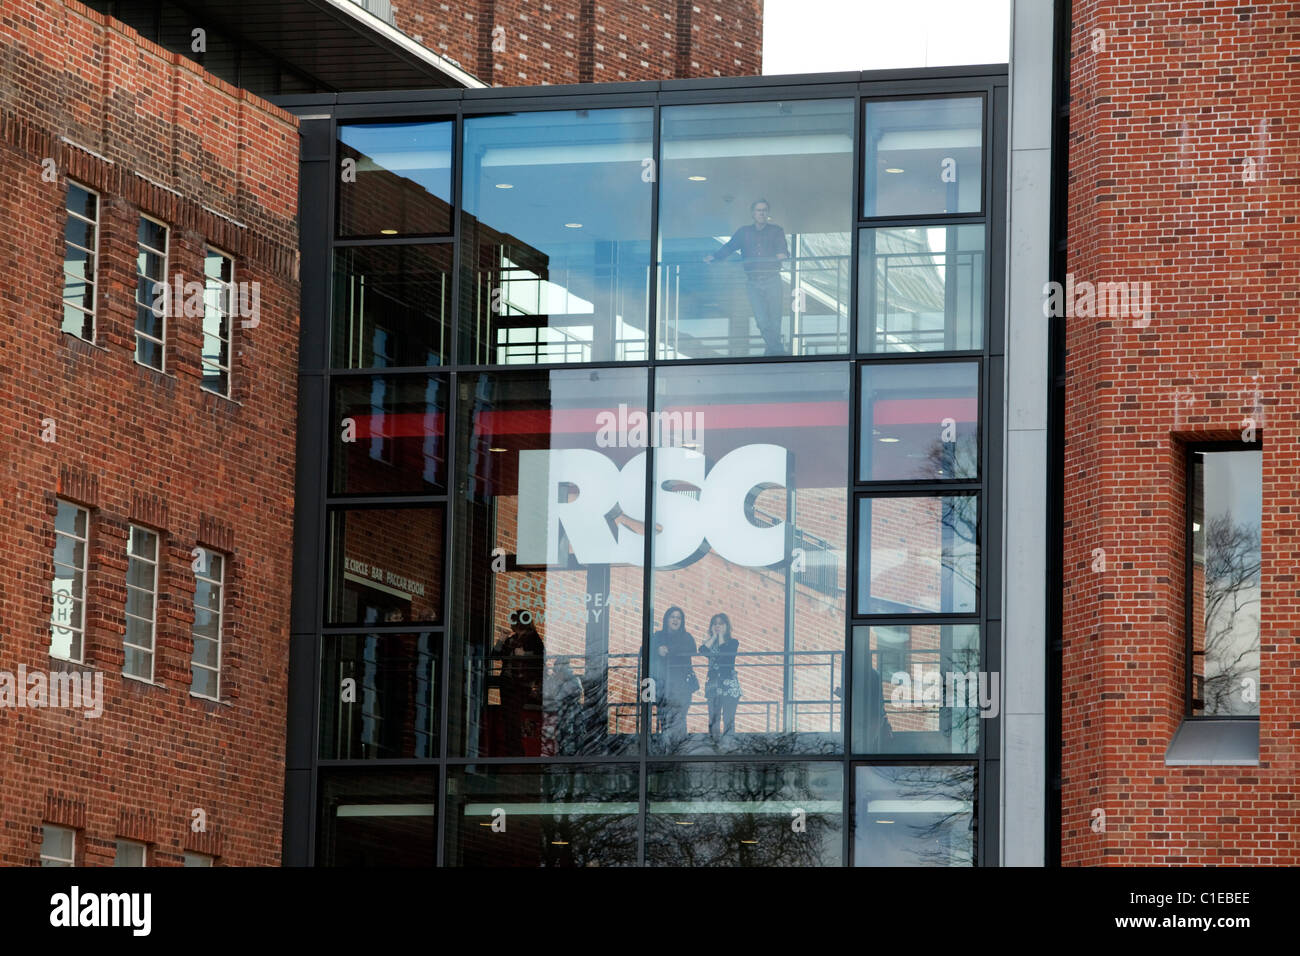 Theatre-goers looking out of the newly renovated RSC Theatre in Stratford-upon-Avon, UK - Stock Image